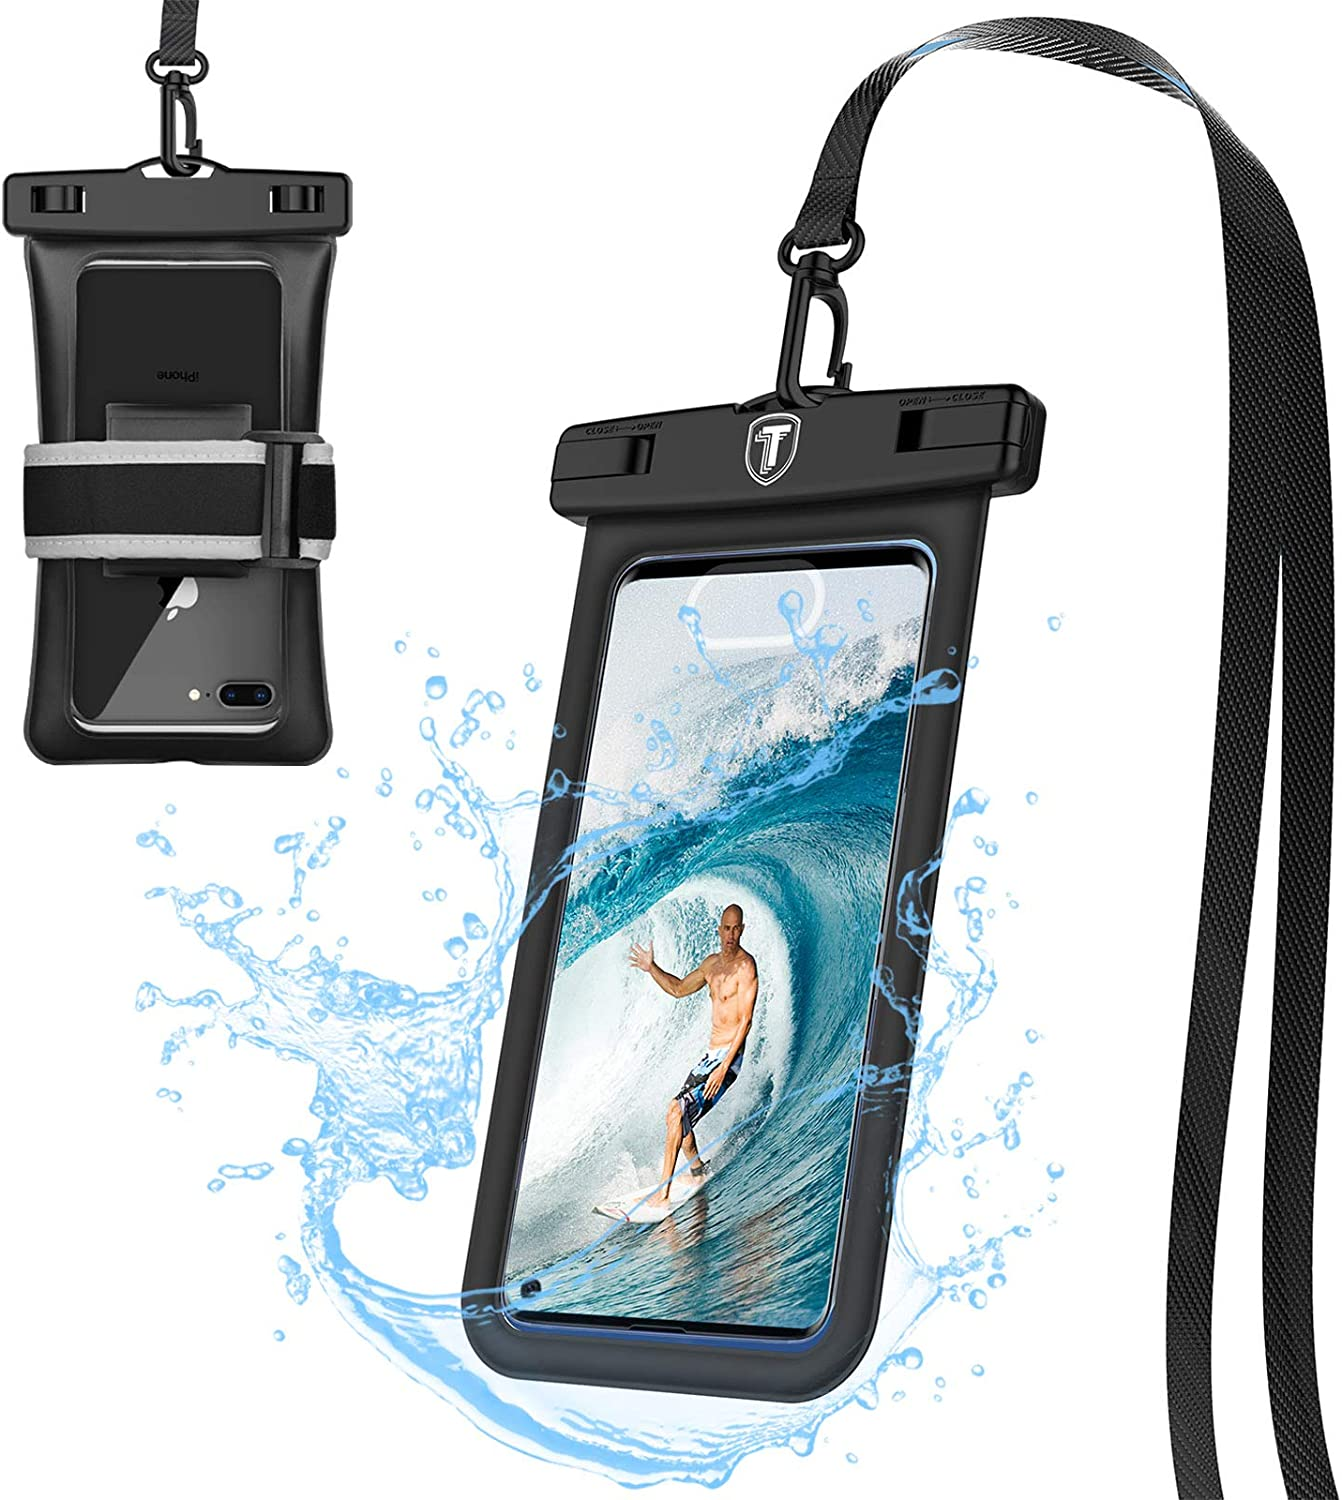 Tiflook Floating Waterproof Phone Pouch with Lanyard and Armband Dry Bag Holder Underwater Case for Motorola Moto G Power G Stylus G Play E E6 One 5G G7 Power G7 Play G6 Z4 Z3, Black